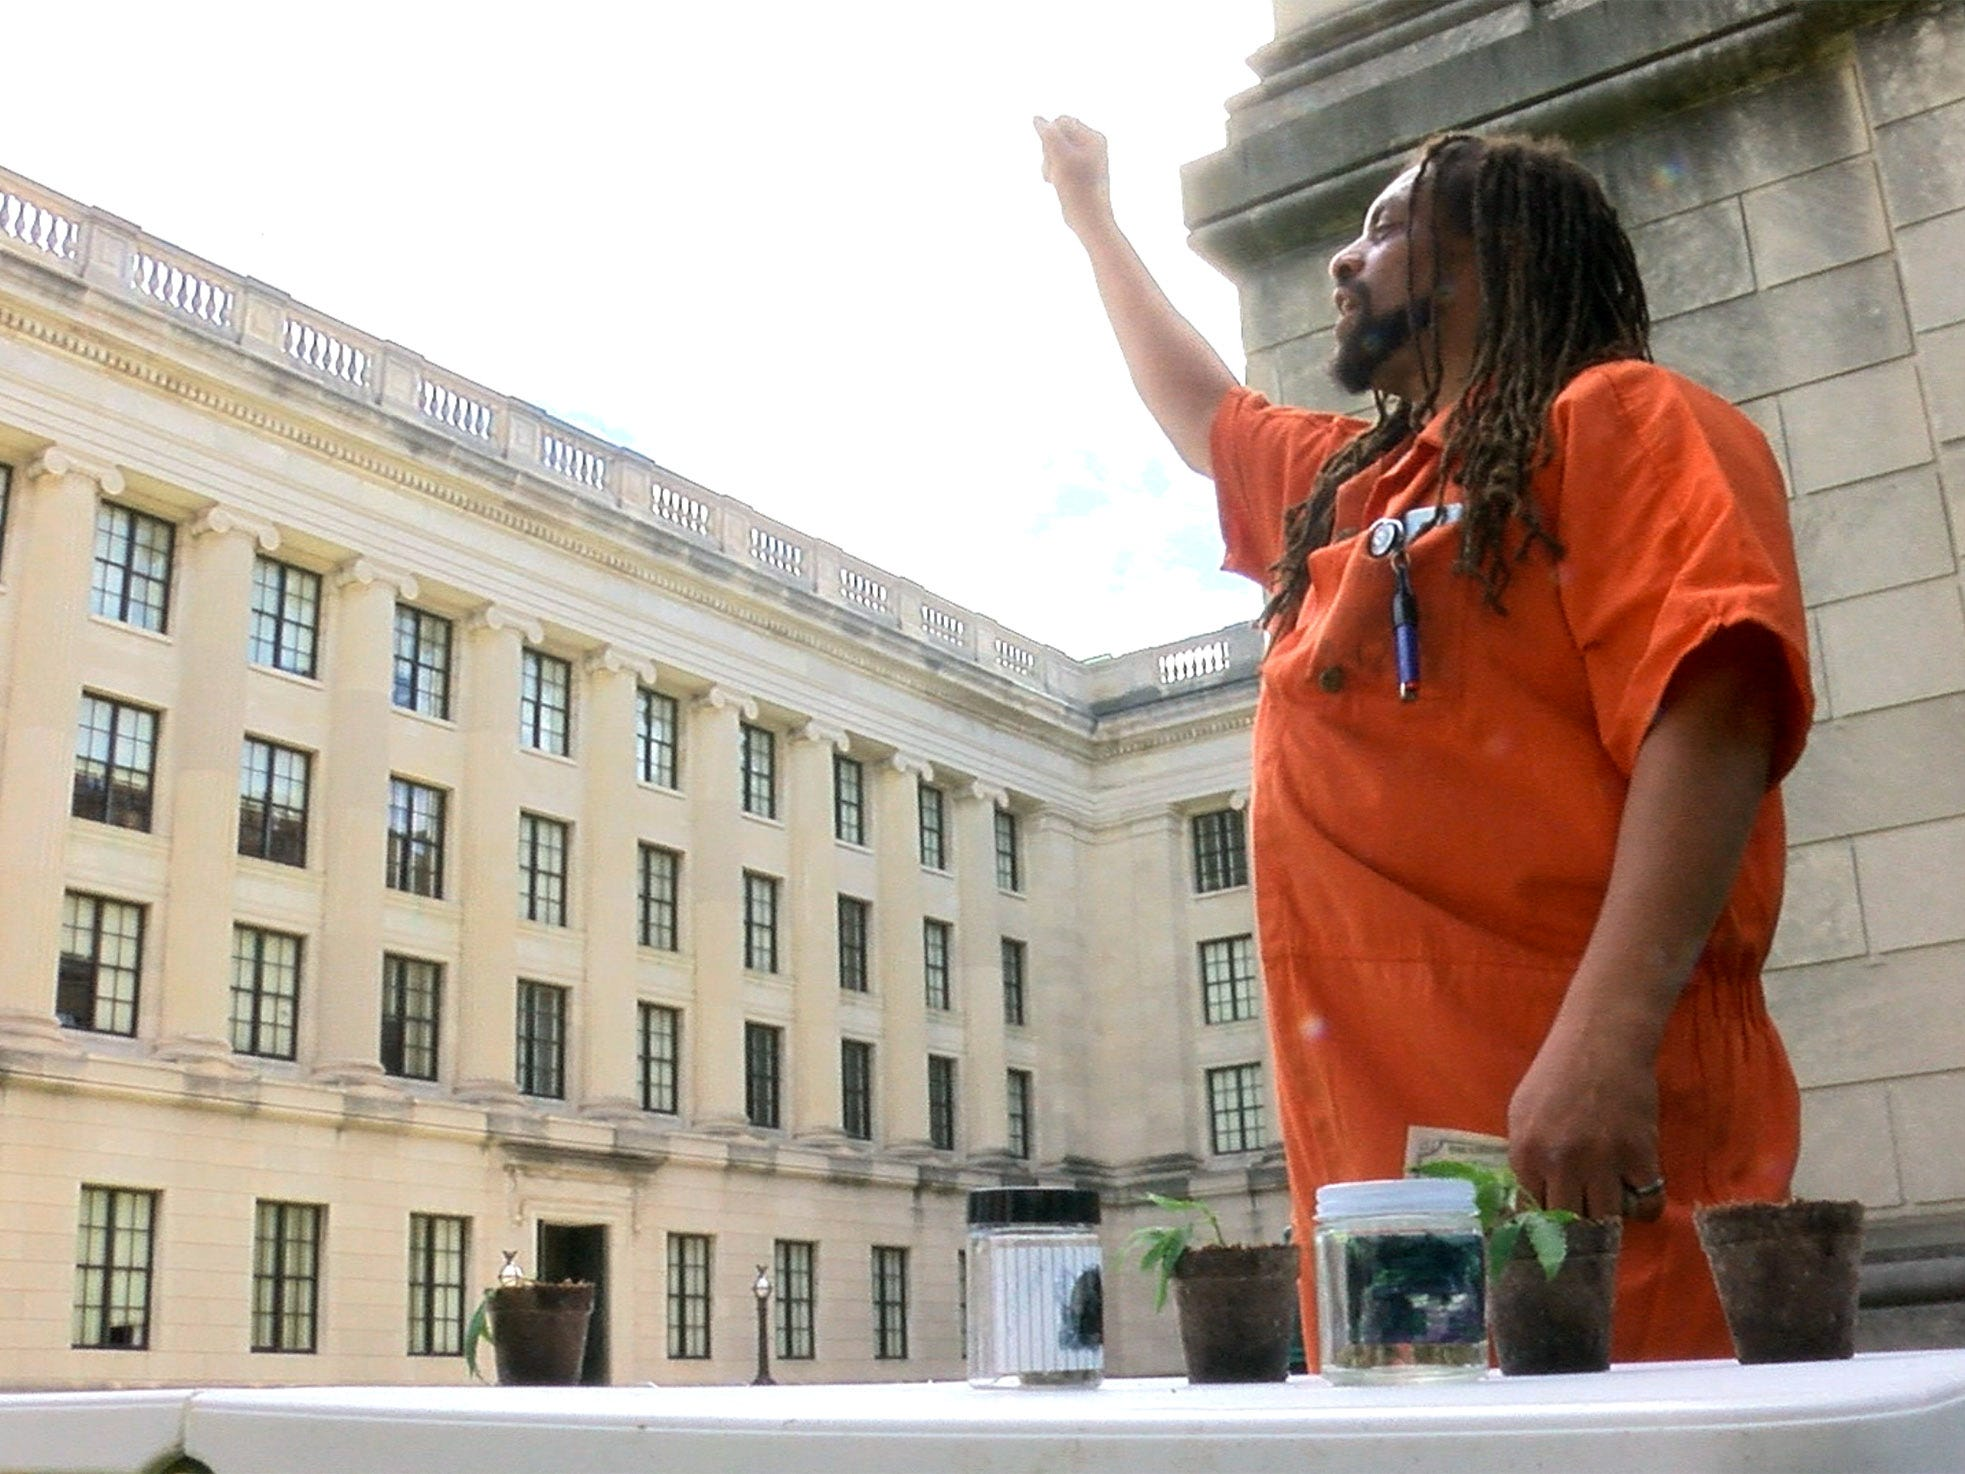 Ed Forchion, known best as NJ Weedman, sets up a table to sell marijuana outside the Statehouse Annex on West State Street in Trenton Thursday, September 27, 2018.  He billed this as his boldest stunt.